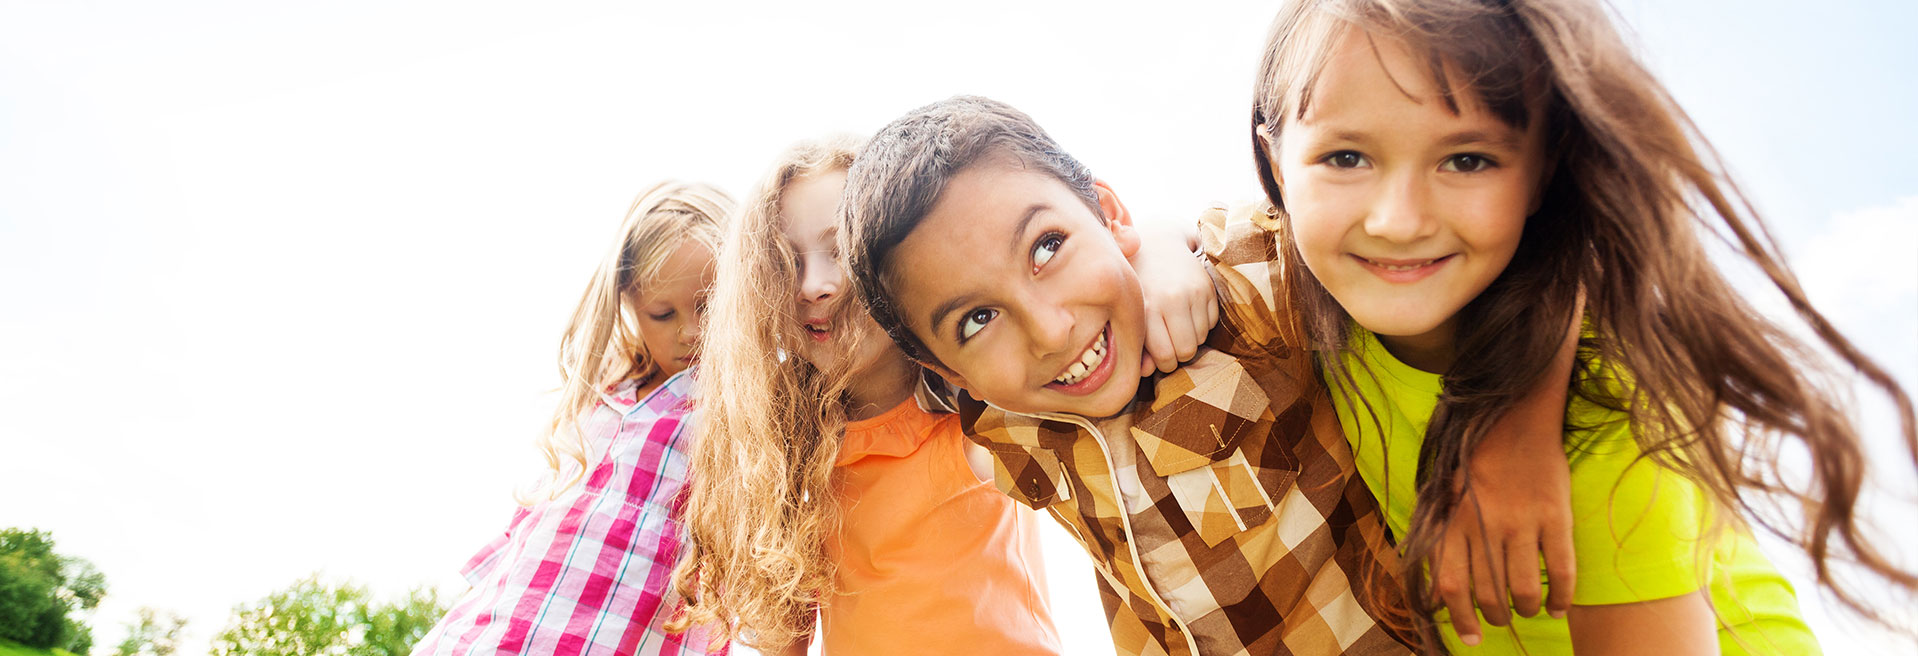 Smiling Kids - Pediatric Dentist in Ann Arbor, MI